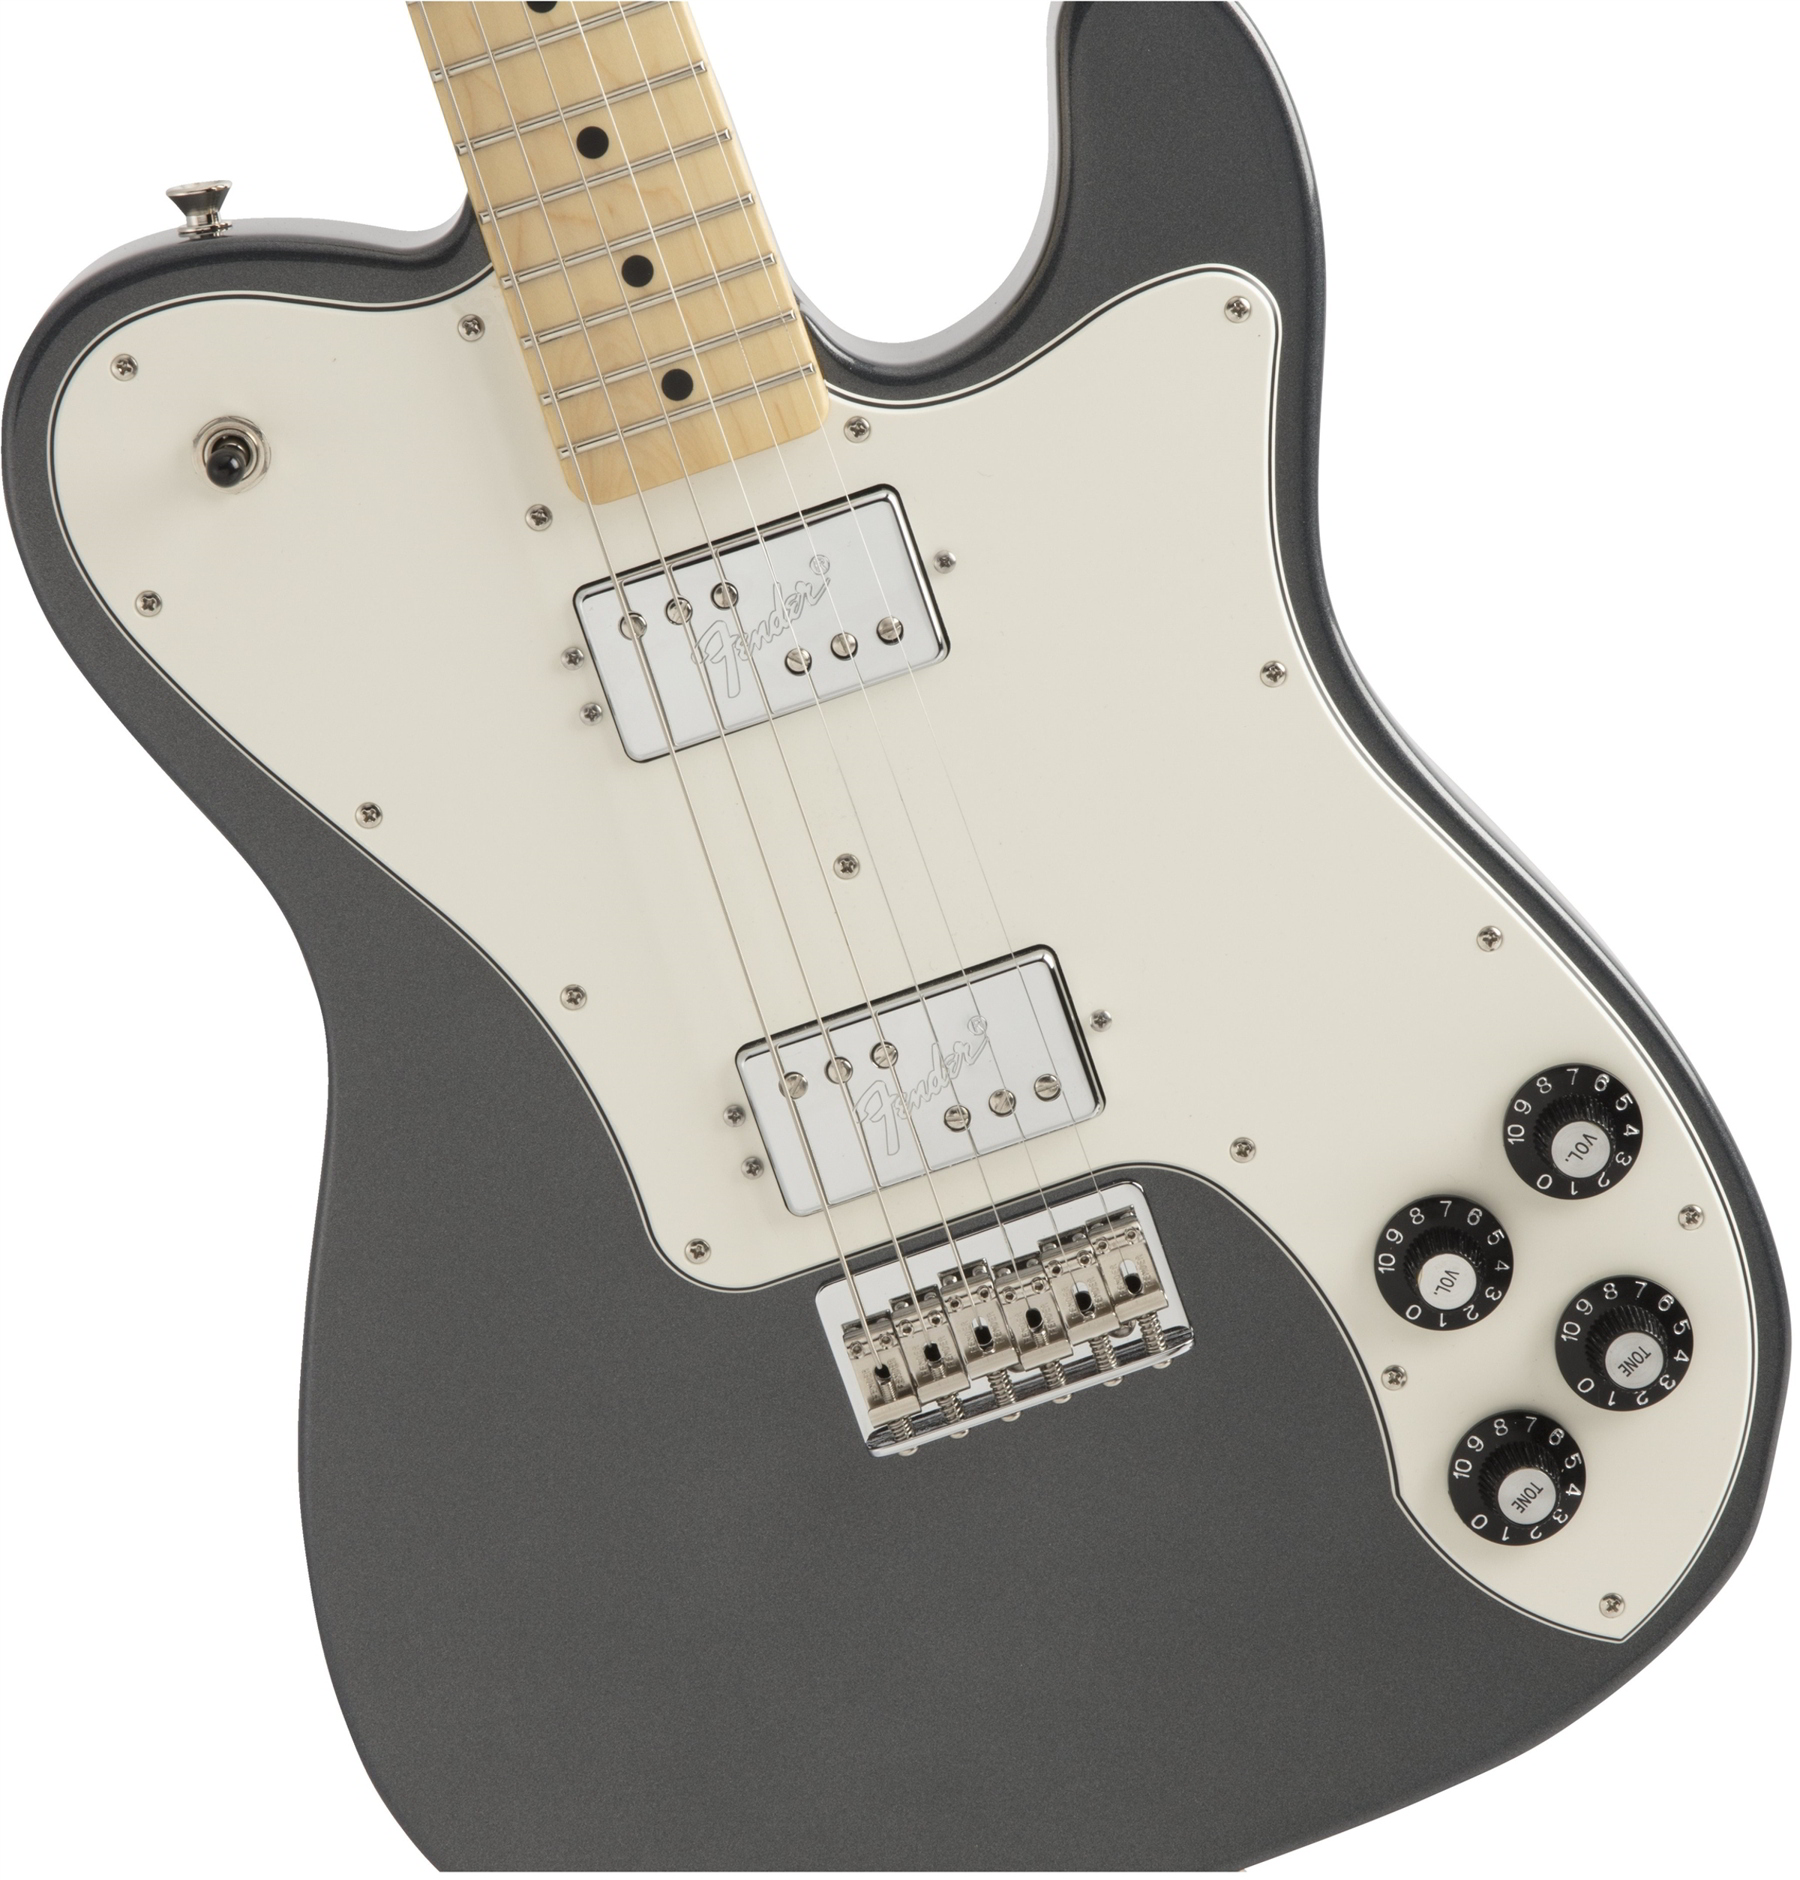 Made in Japan Hybrid Telecaster Deluxe Charcoal Frost Metallic追加画像